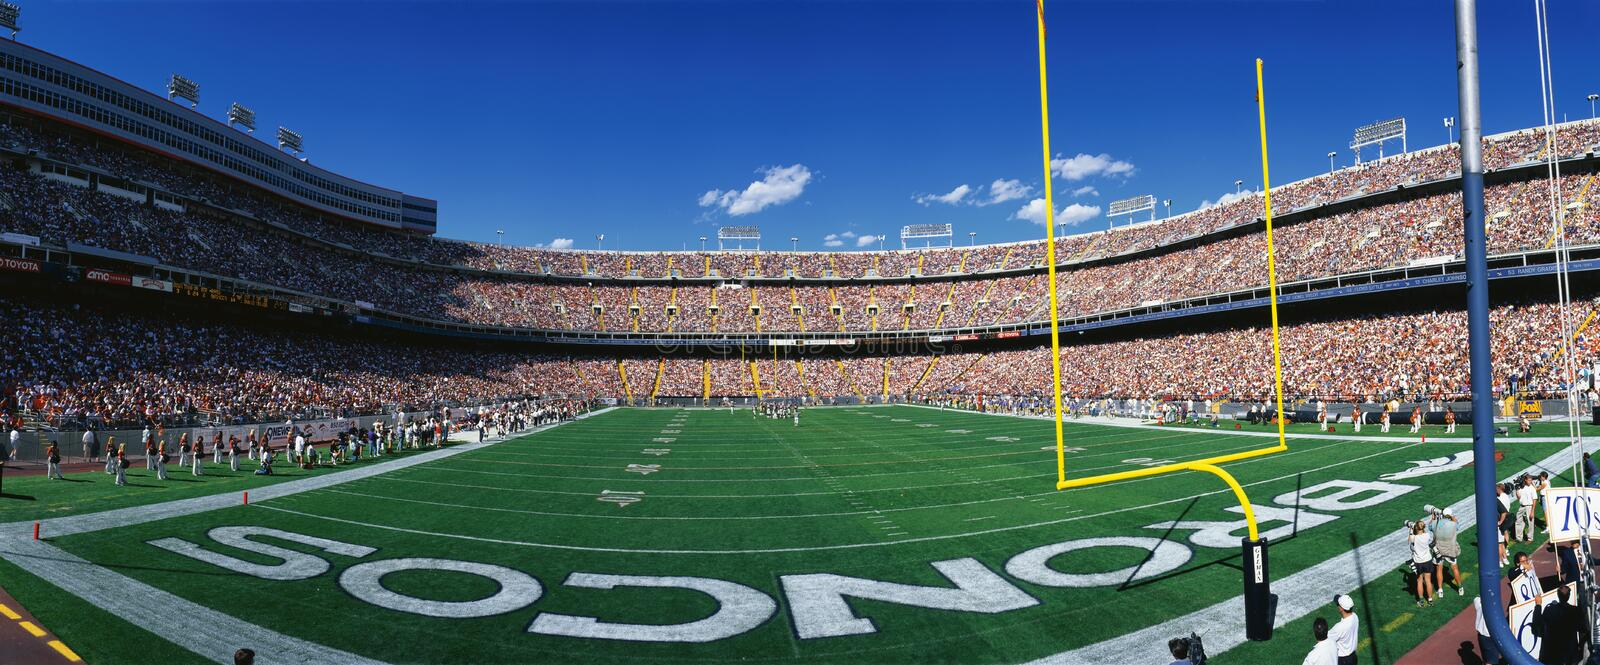 Mile High Stadium. This is Mile High Stadium and the game is the Denver Broncos vs. the St. Louis Rams. It is a sold out NFL game that took place on 9/14/97